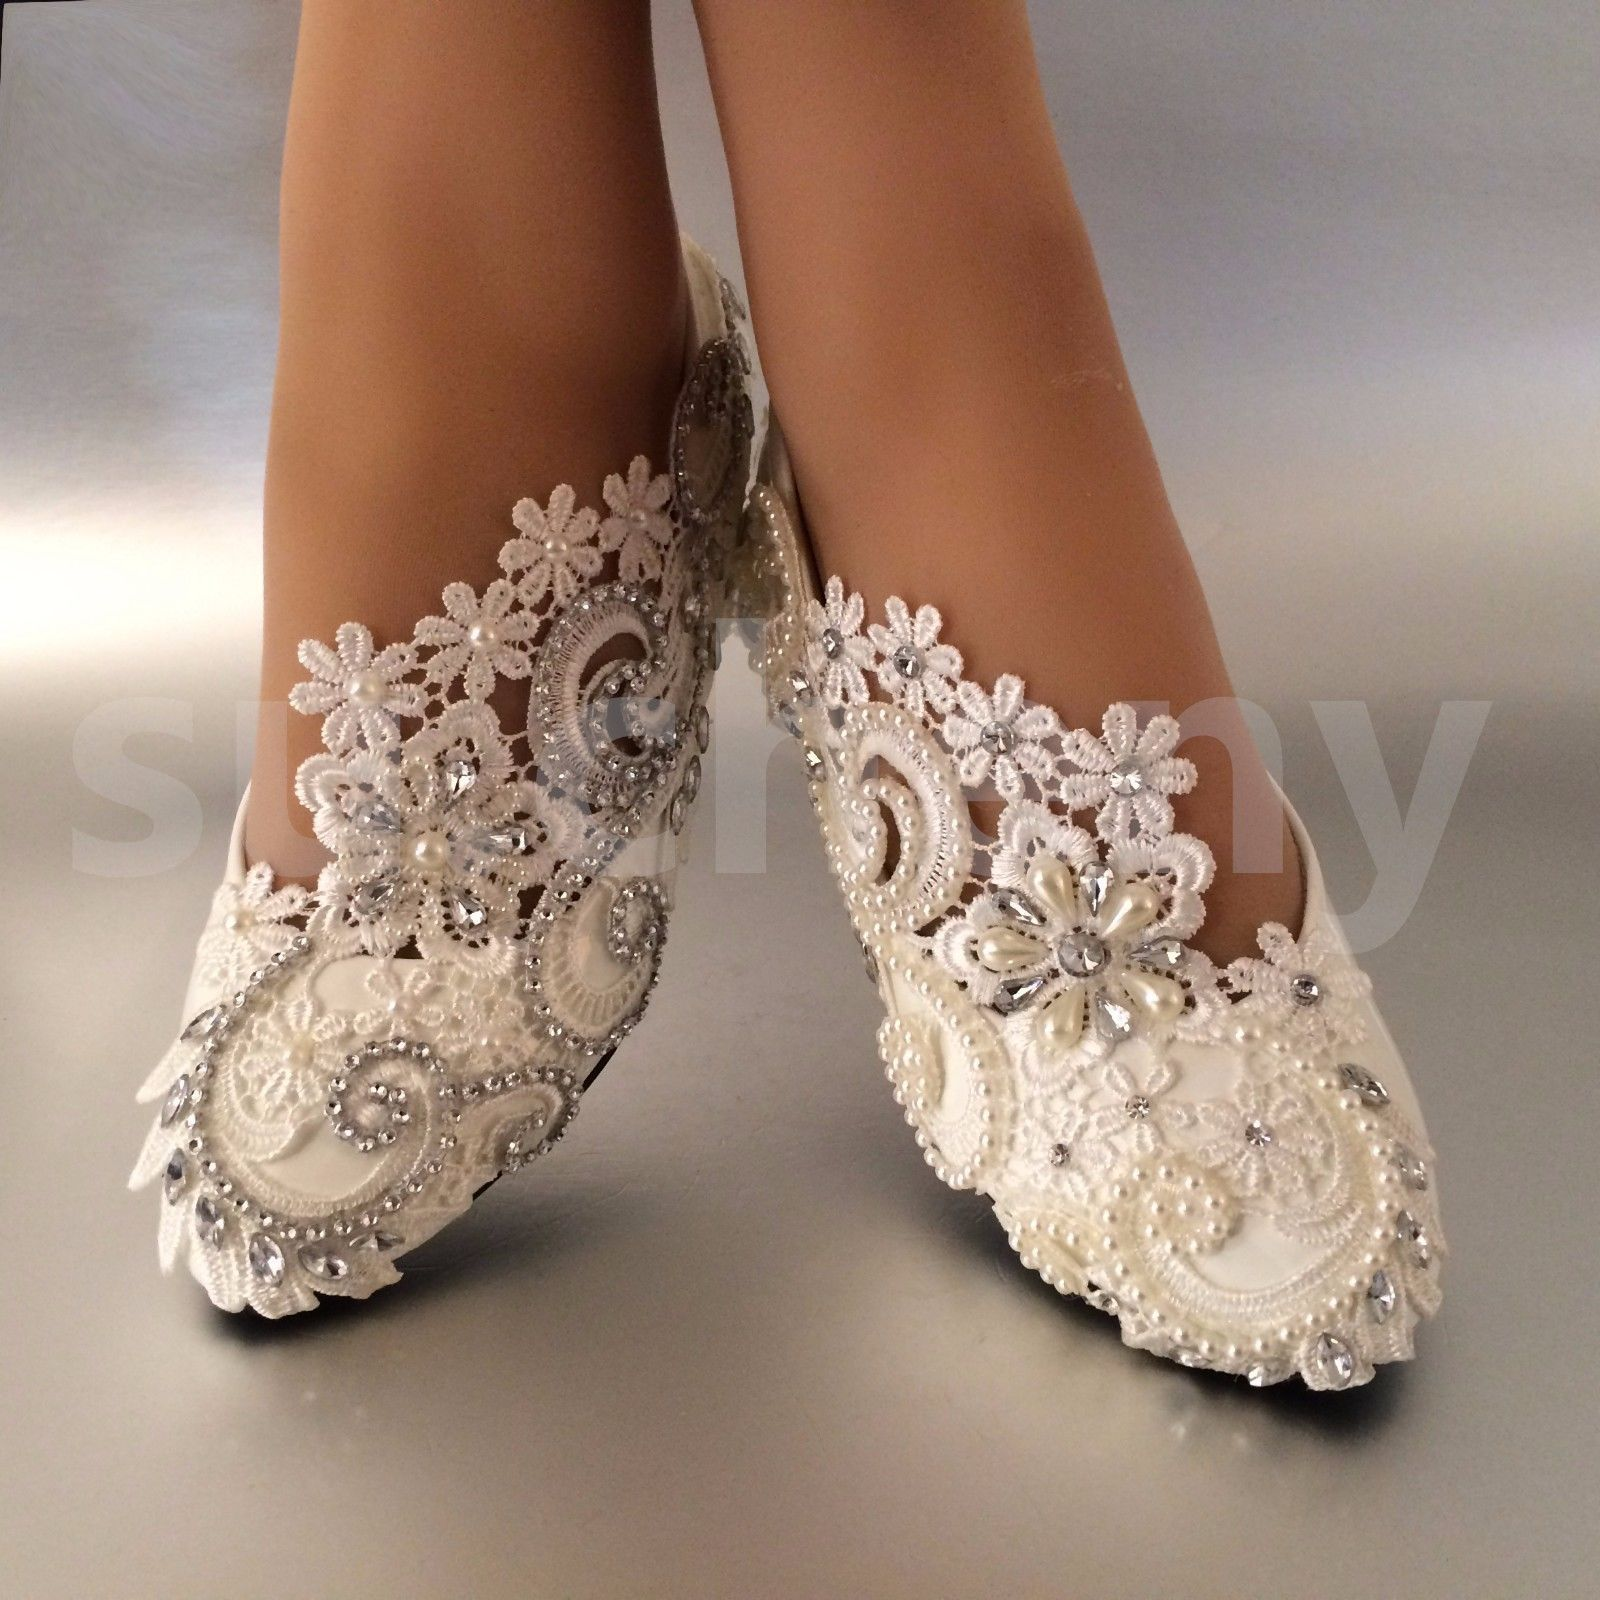 White Ivory Pearls Lace Crystal Wedding Shoes Flat Ballet Bridal